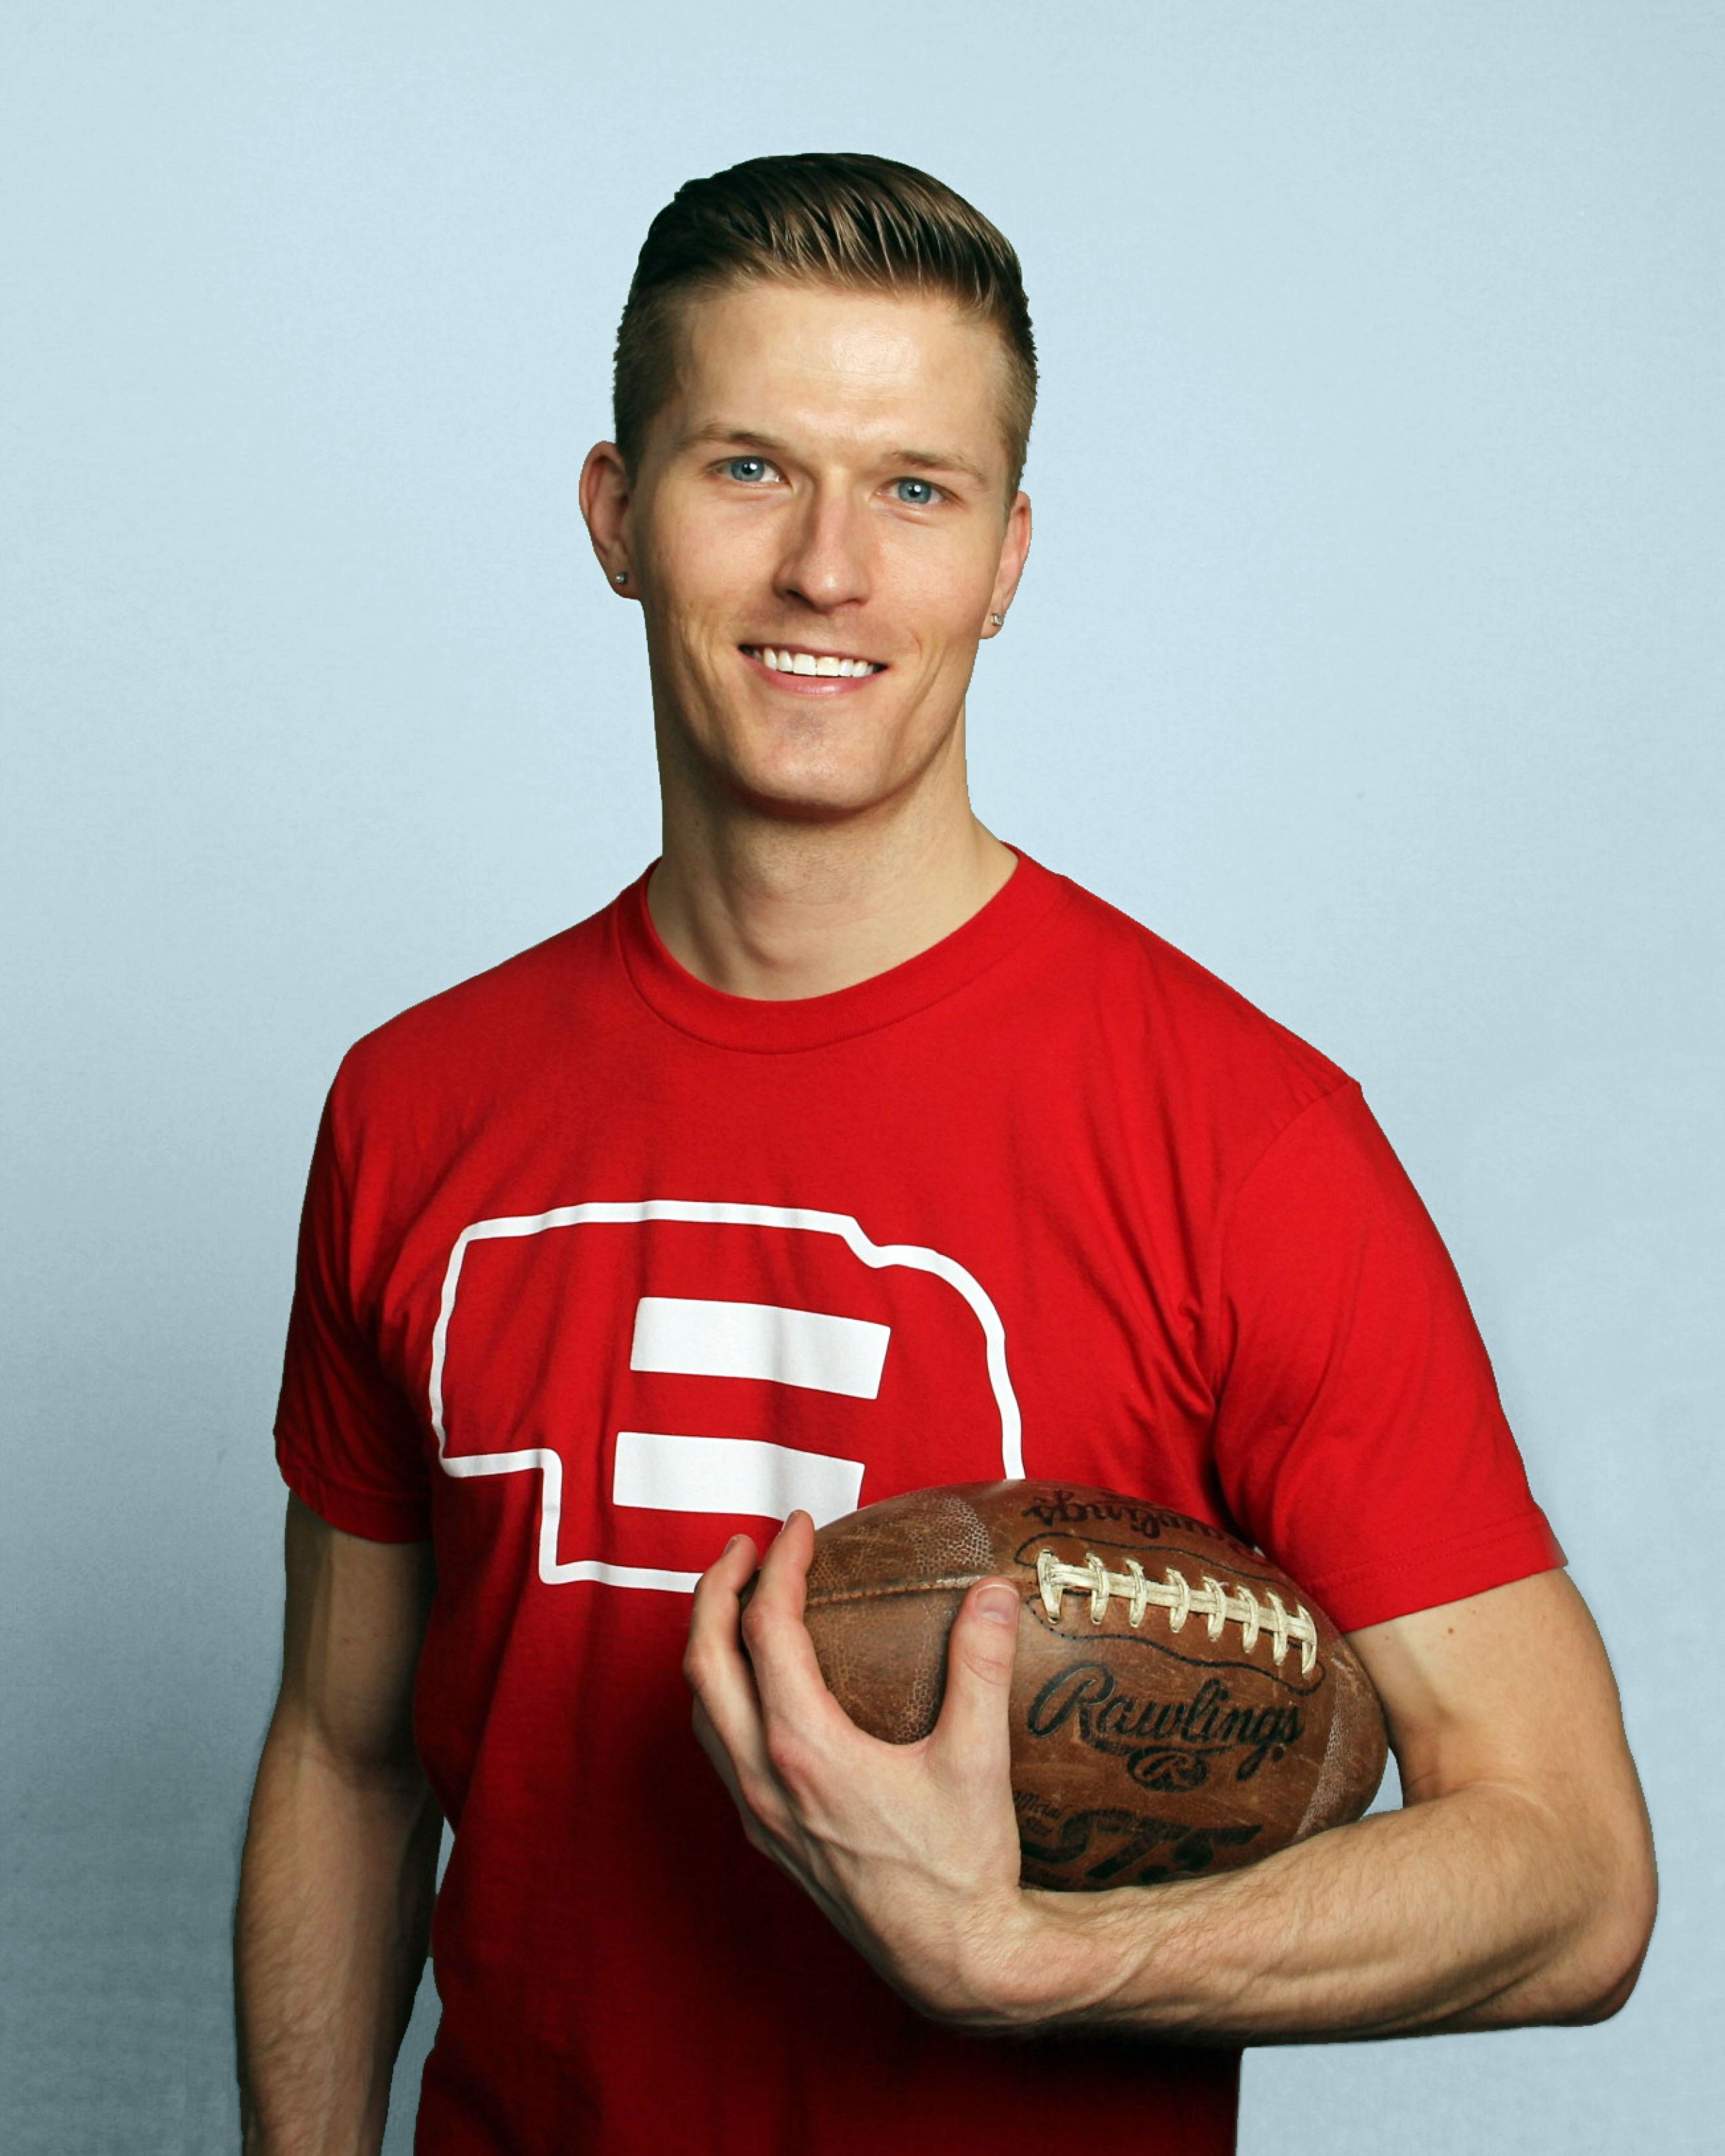 an essay on homosexual football players This sample paper discusses on homosexuality in american football and the recent  this sample essay will explore  gay professional football players and.